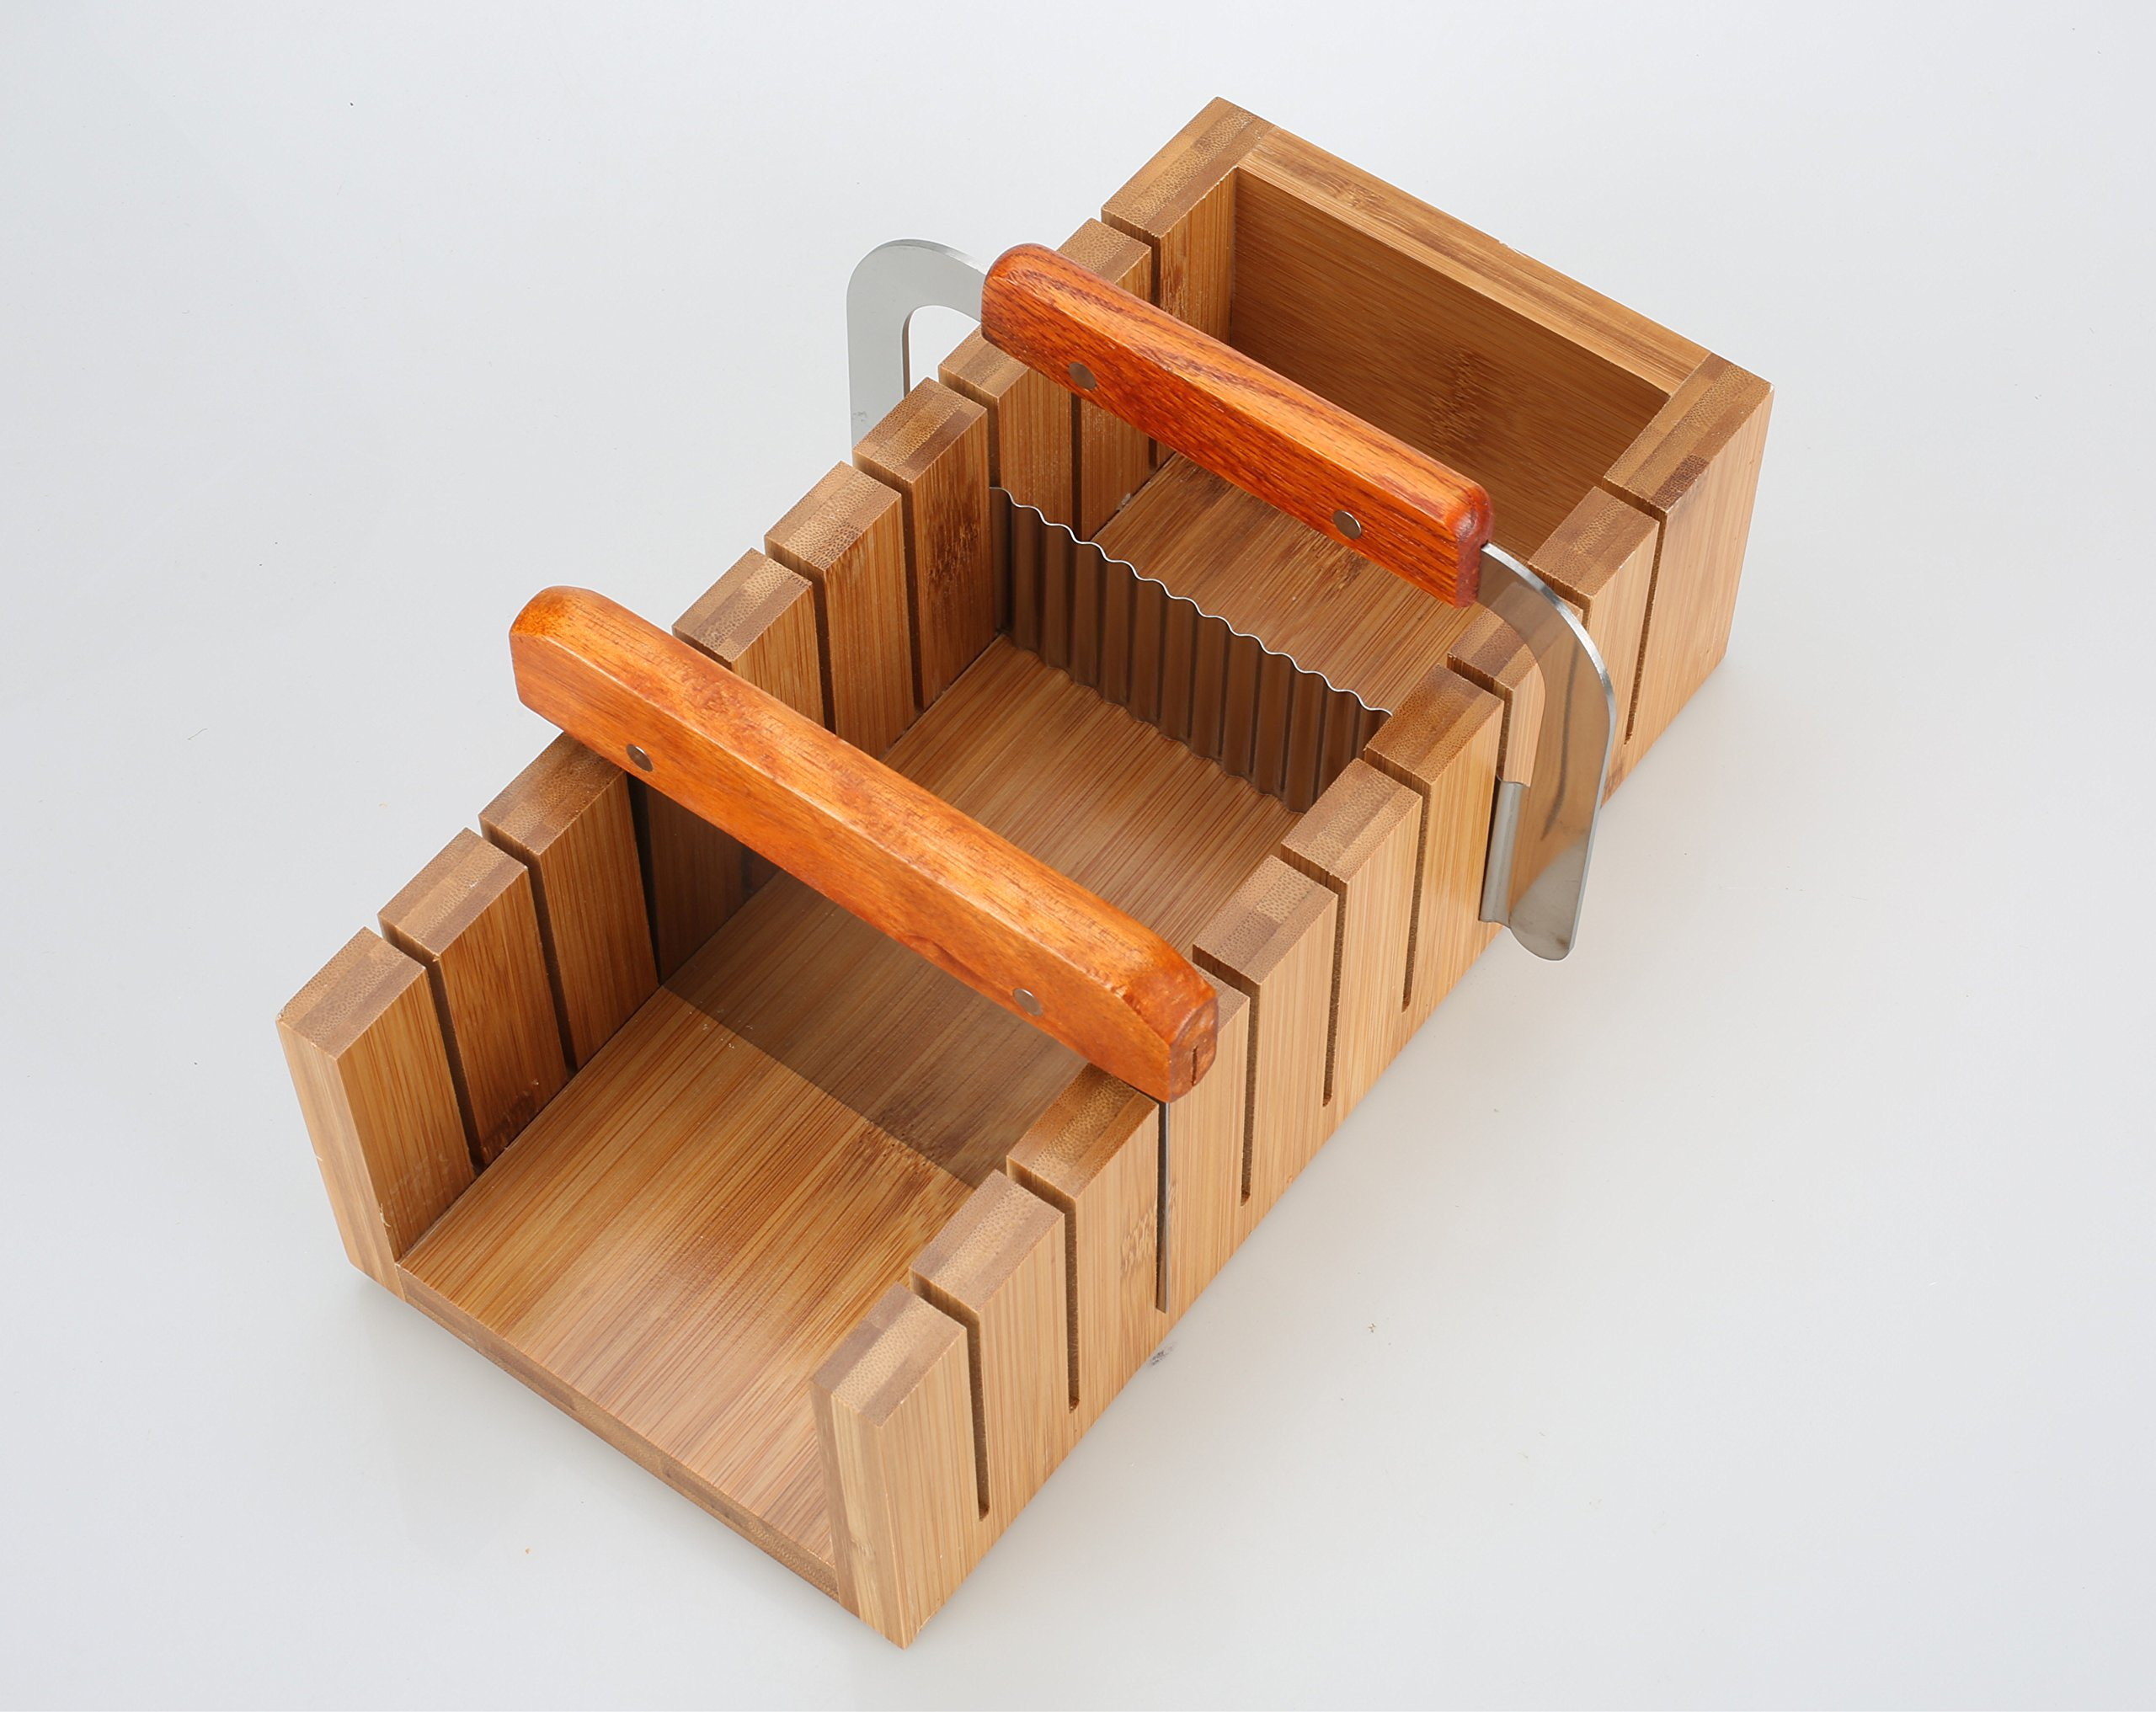 Wood Soap Mold Loaf Cutter Mold with 1pcs Wavy & Straight Planer Cutting Tool Set (1 INCHES)